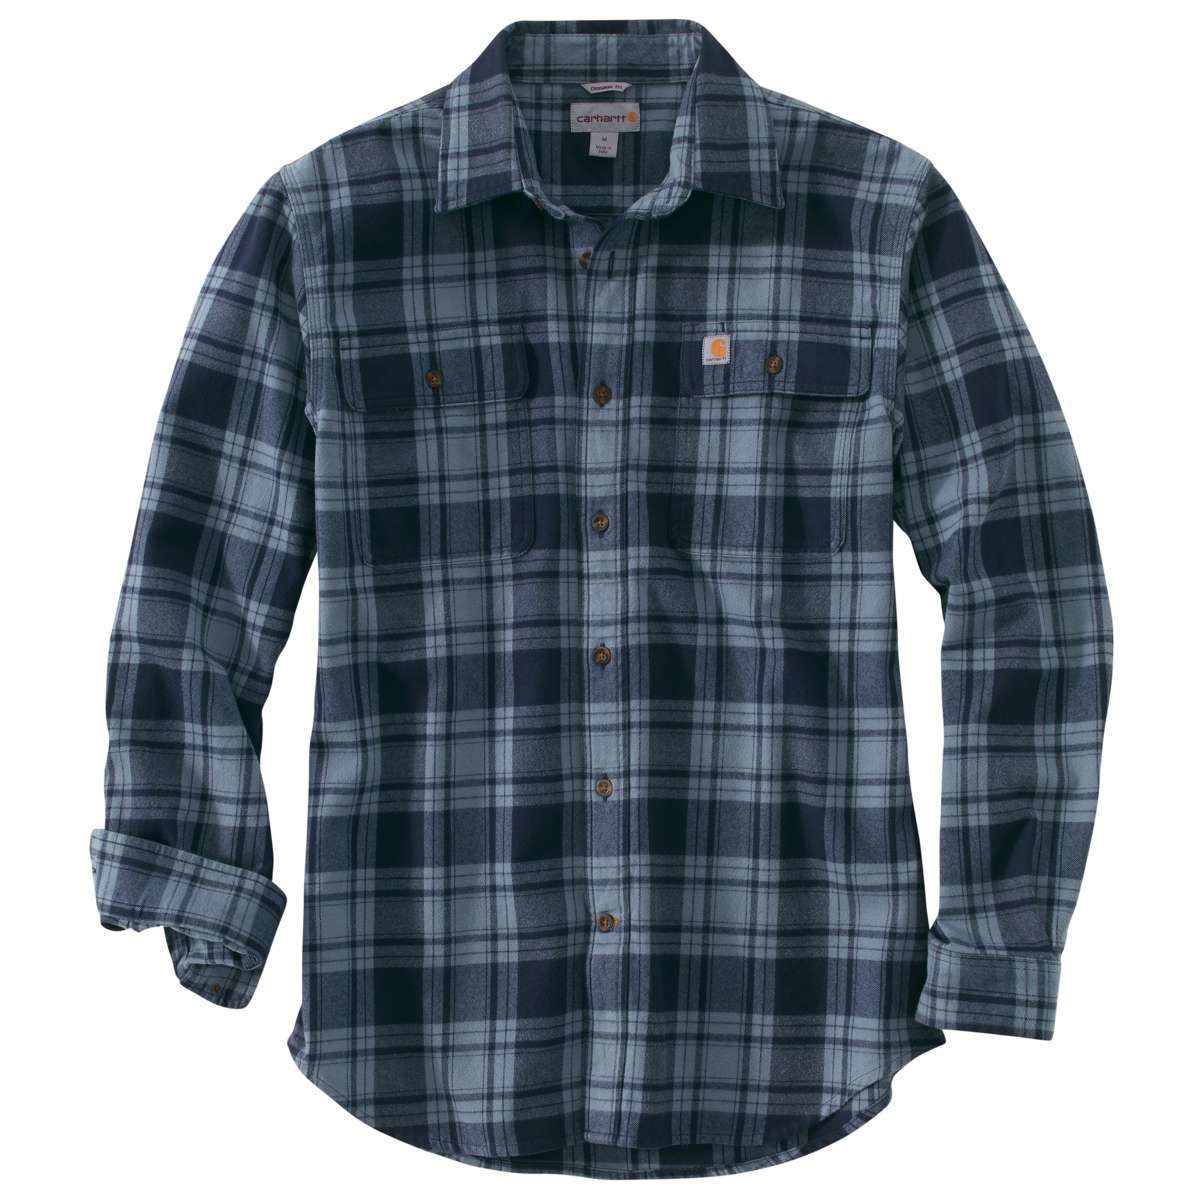 Carhartt Men's Hubbard Plaid Long-Sleeve Flannel Shirt - Blue, XXL